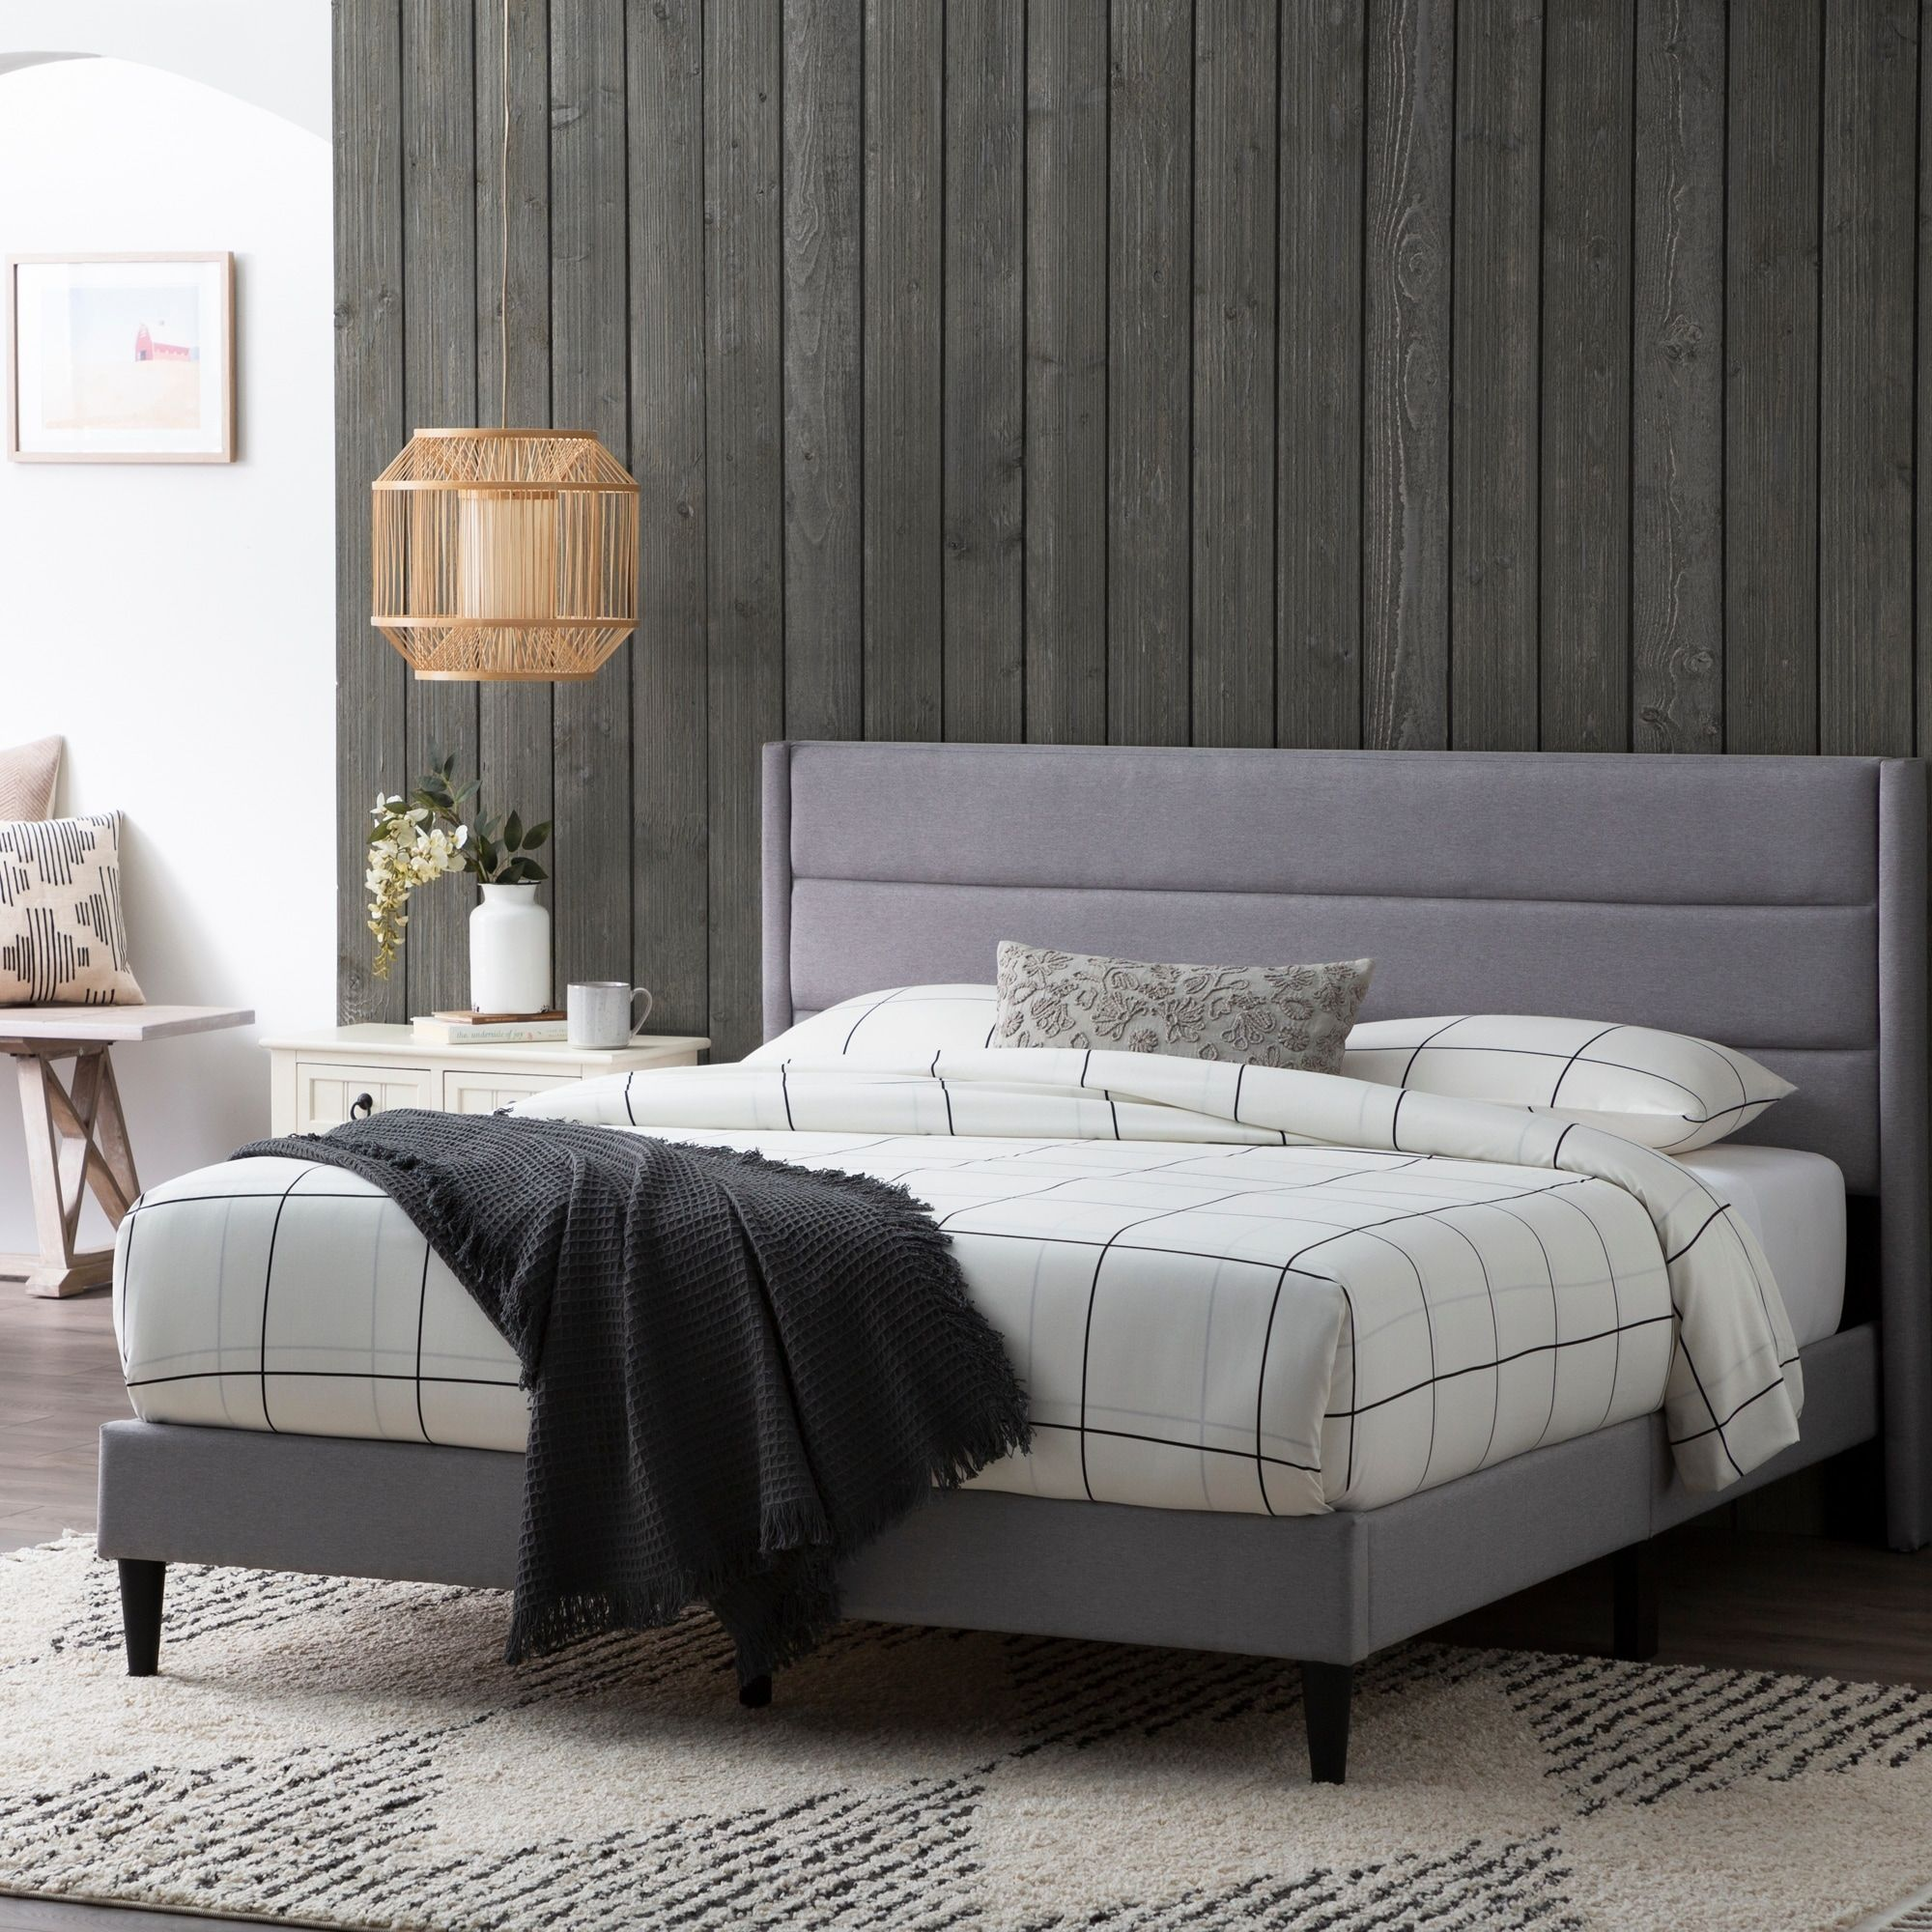 Shop Brookside Sara Upholstered Bed With Horizontal Channels